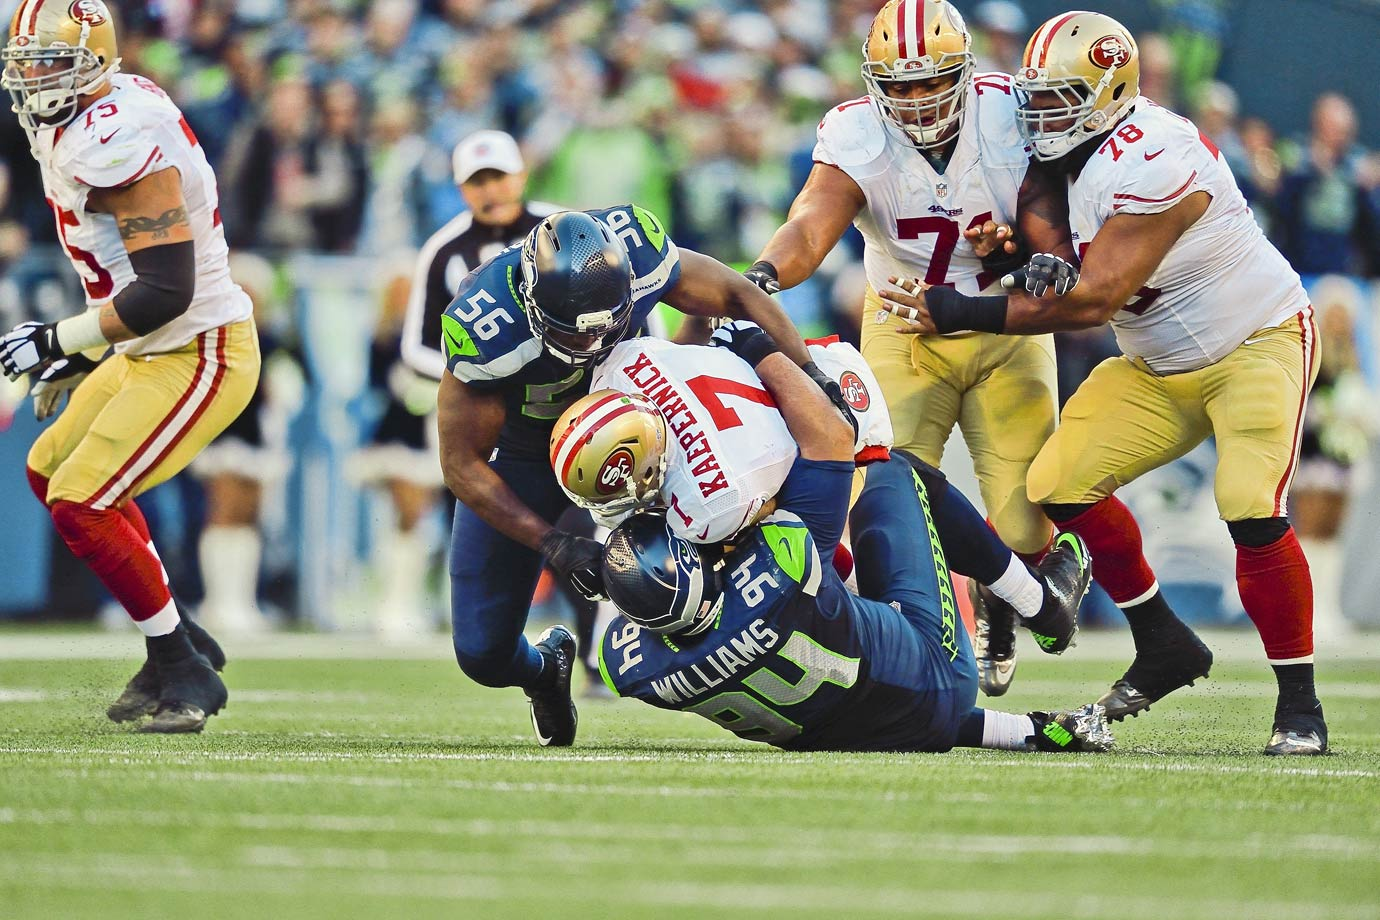 Playing San Francisco for the second time in three weeks, the Seahawks kept their thumb down on their division rival in a 17-7 win. The defense sacked Kaepernick six times, as he played another poor game.